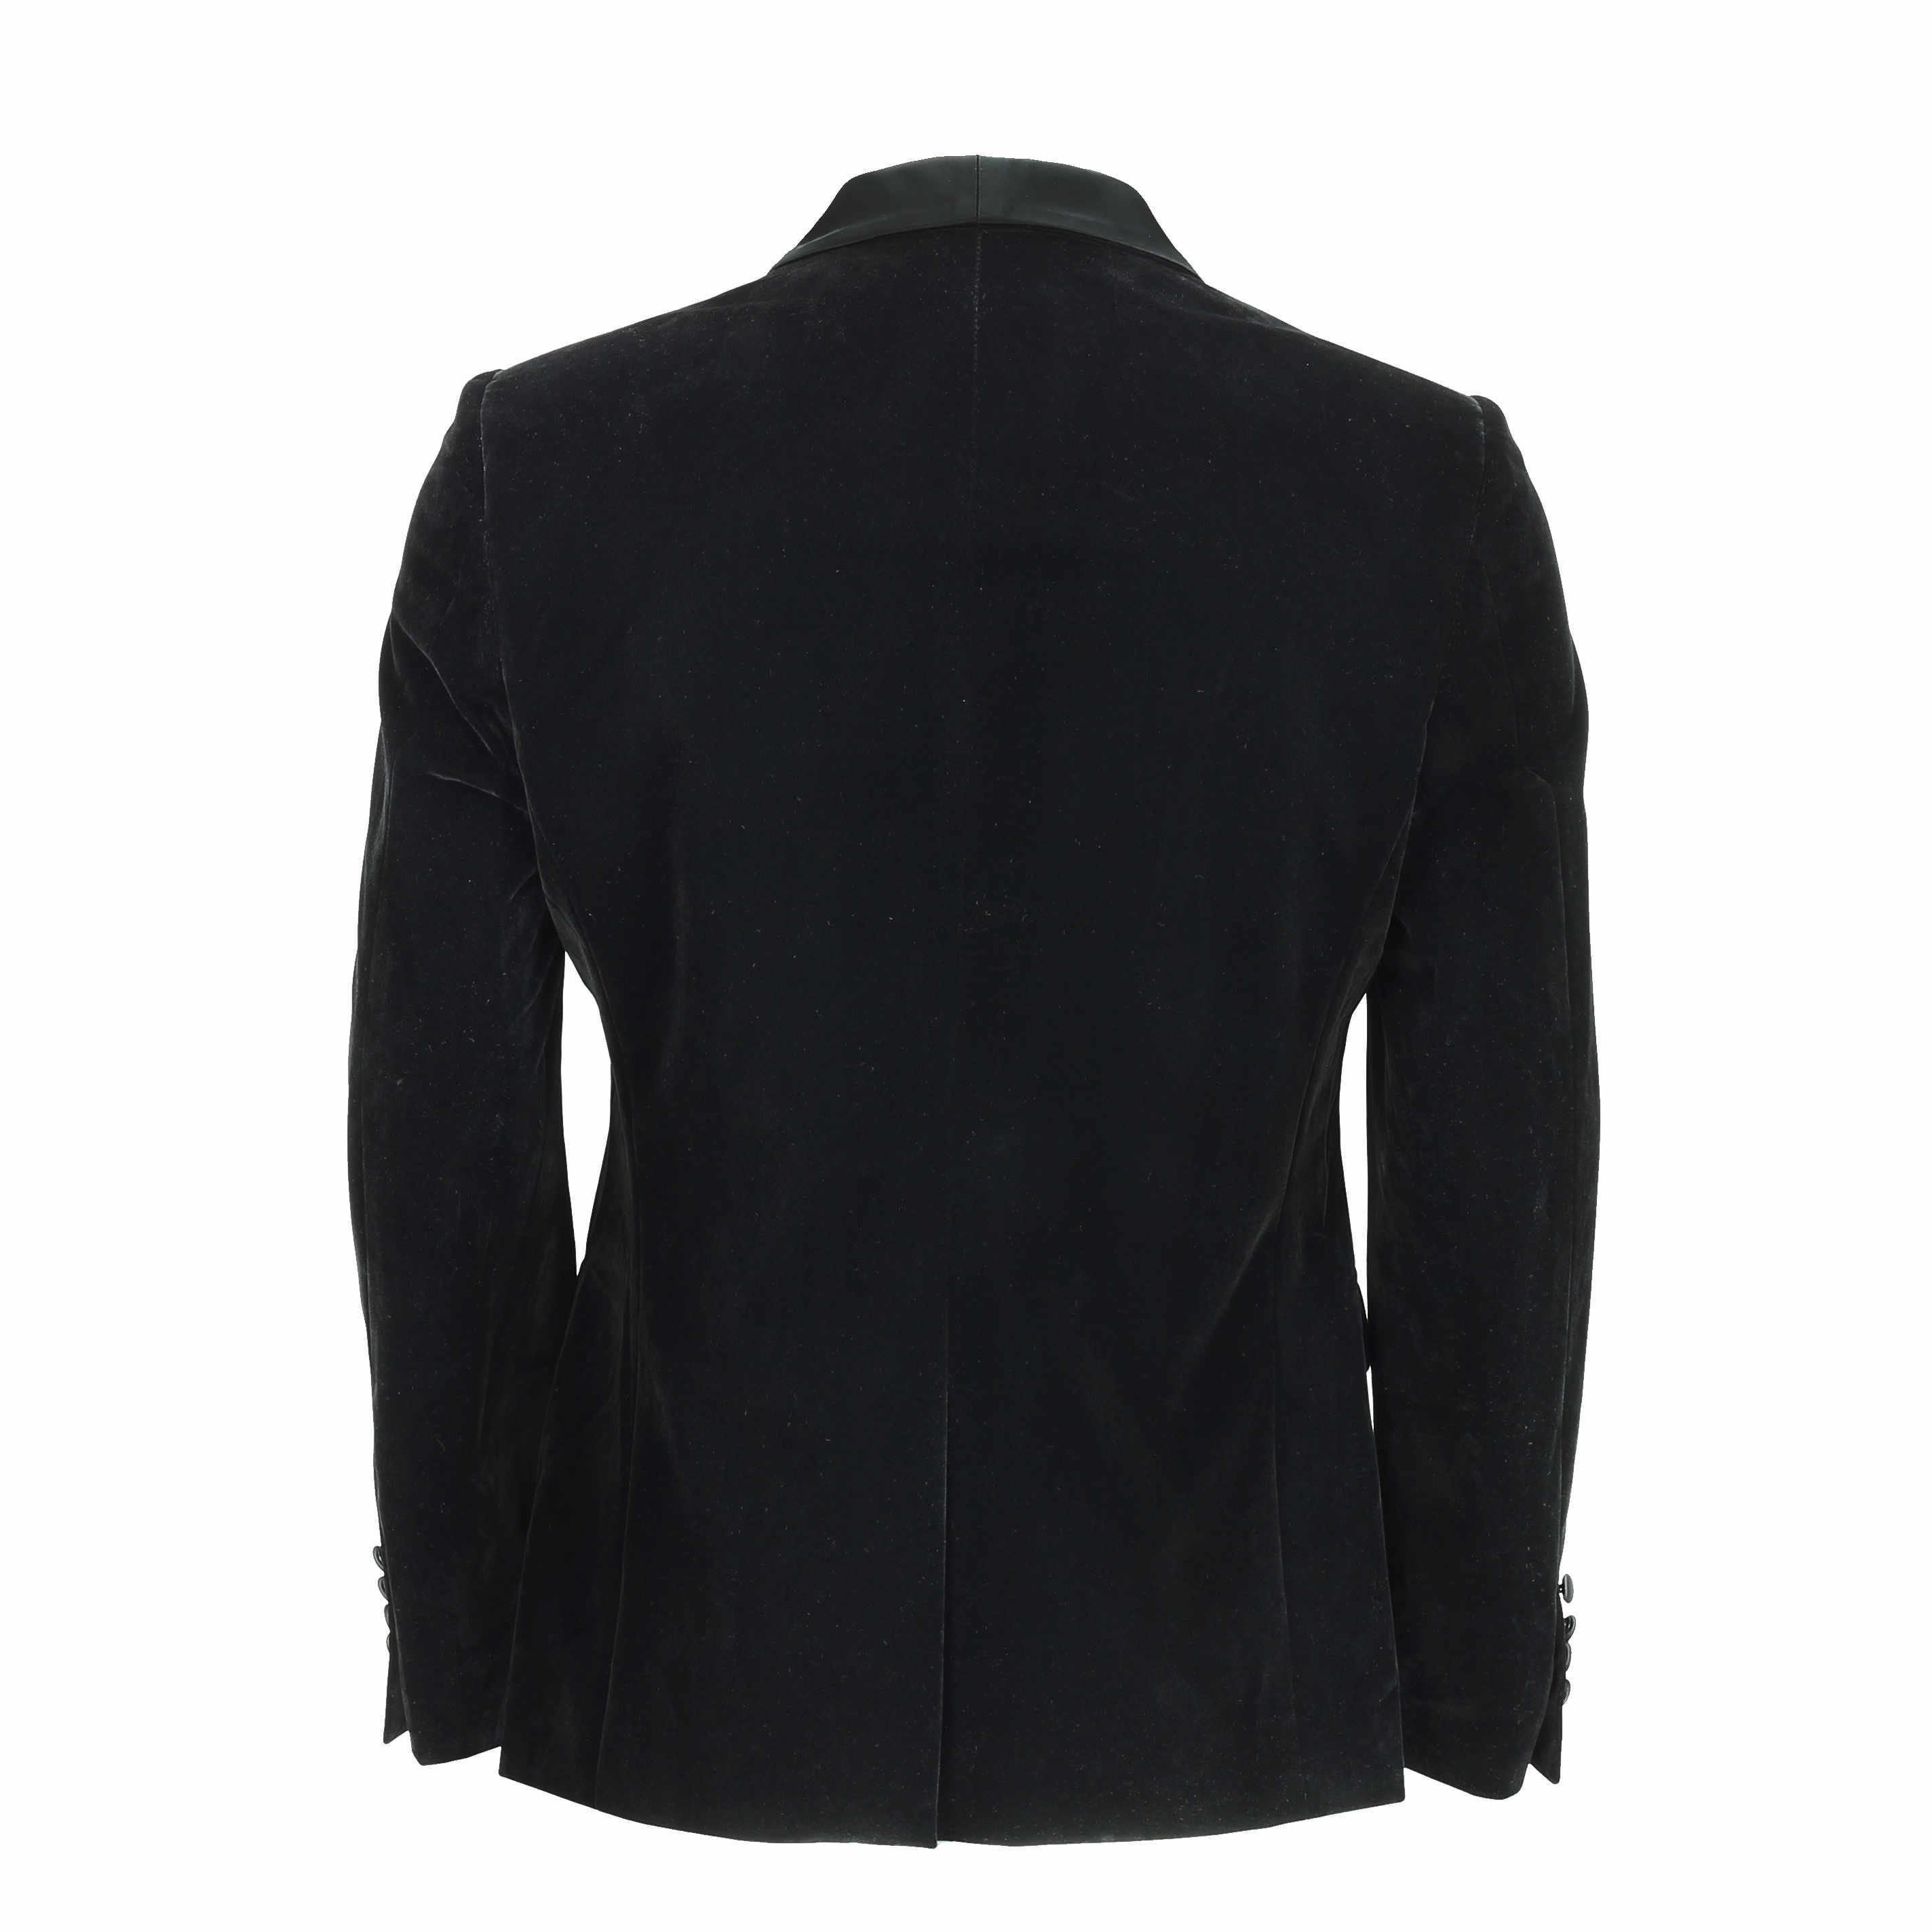 Classy men's tuxedo coat from Bill Blass looks smart at special occasions Stylish velvet blazer is a men's evening wear or formal apparel essential Upgrade your formal wardrobe with this swanky jacket.